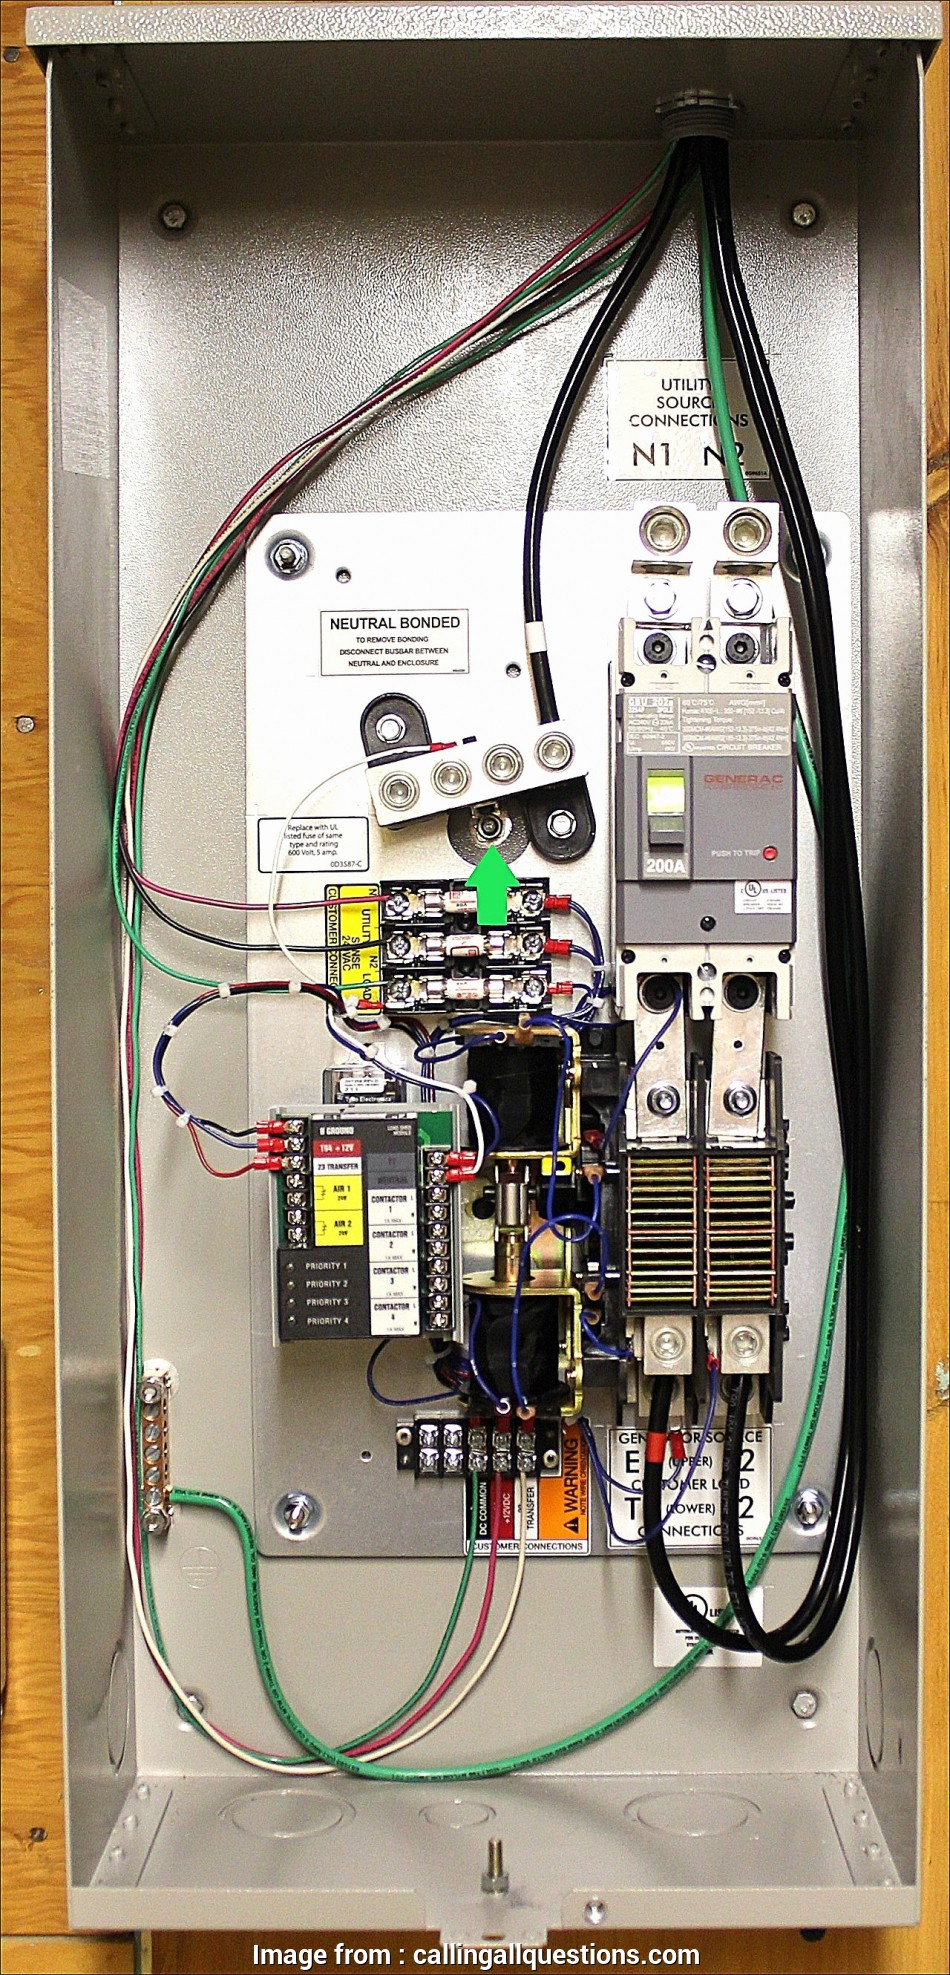 generac 200 amp transfer switch wiring diagram Generac, Amp Transfer Switch Wiring Diagram Reference Of Generac, Amp Transfer Switch Wiring Diagram Elegant Generac Ats 10 Practical Generac, Amp Transfer Switch Wiring Diagram Images